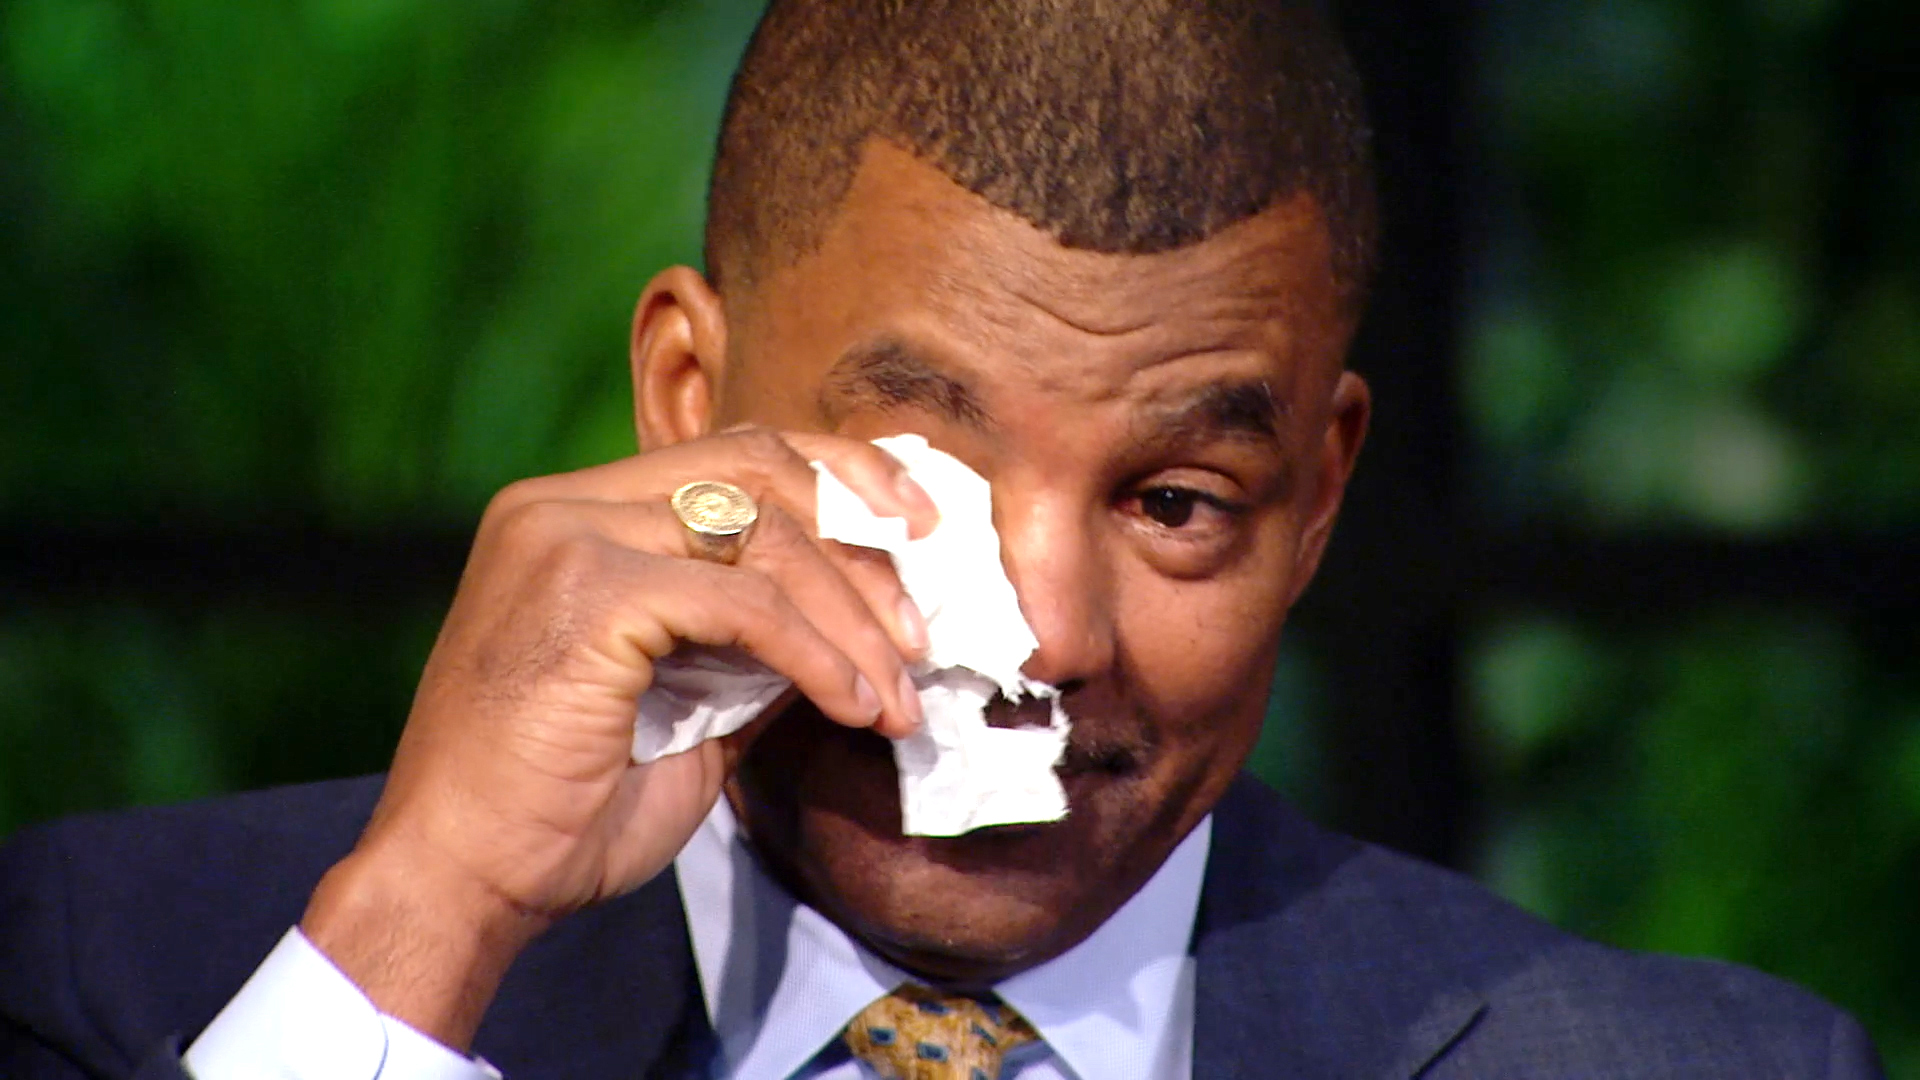 Cecil Sheds Tears at the Married to Medicine Reunion